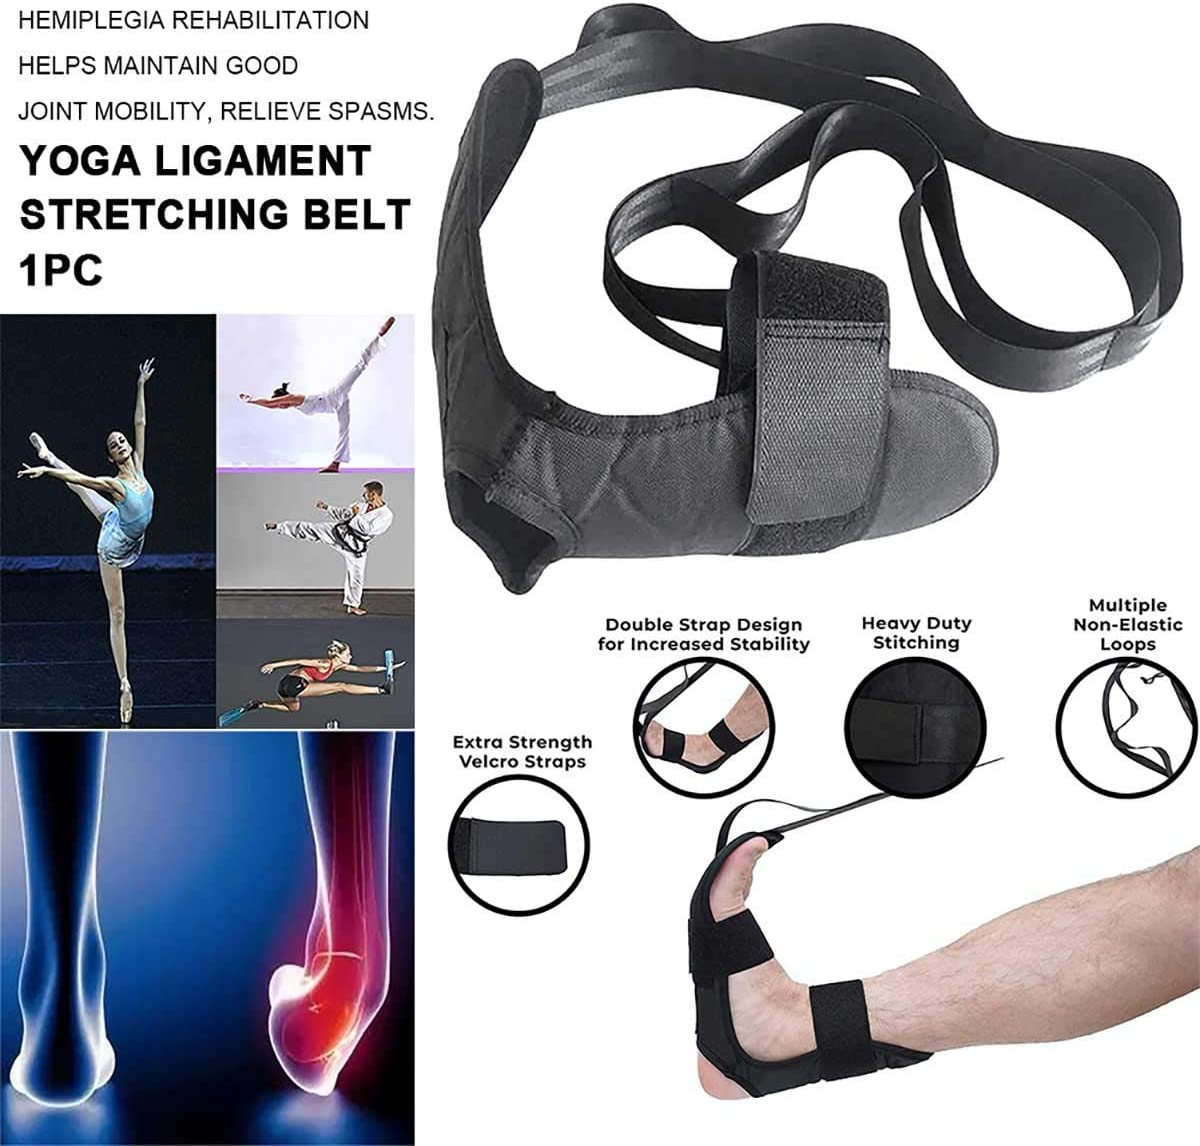 Gym Yoga Ligament Stretching Belt,Foot Stretching Strap Fitness,Stretching Belt Foot for Exercise,Achilles Tendinitis,Relieve Cramps Yoga Stretching Strap Ligament Stretch Bands for Family Fitness